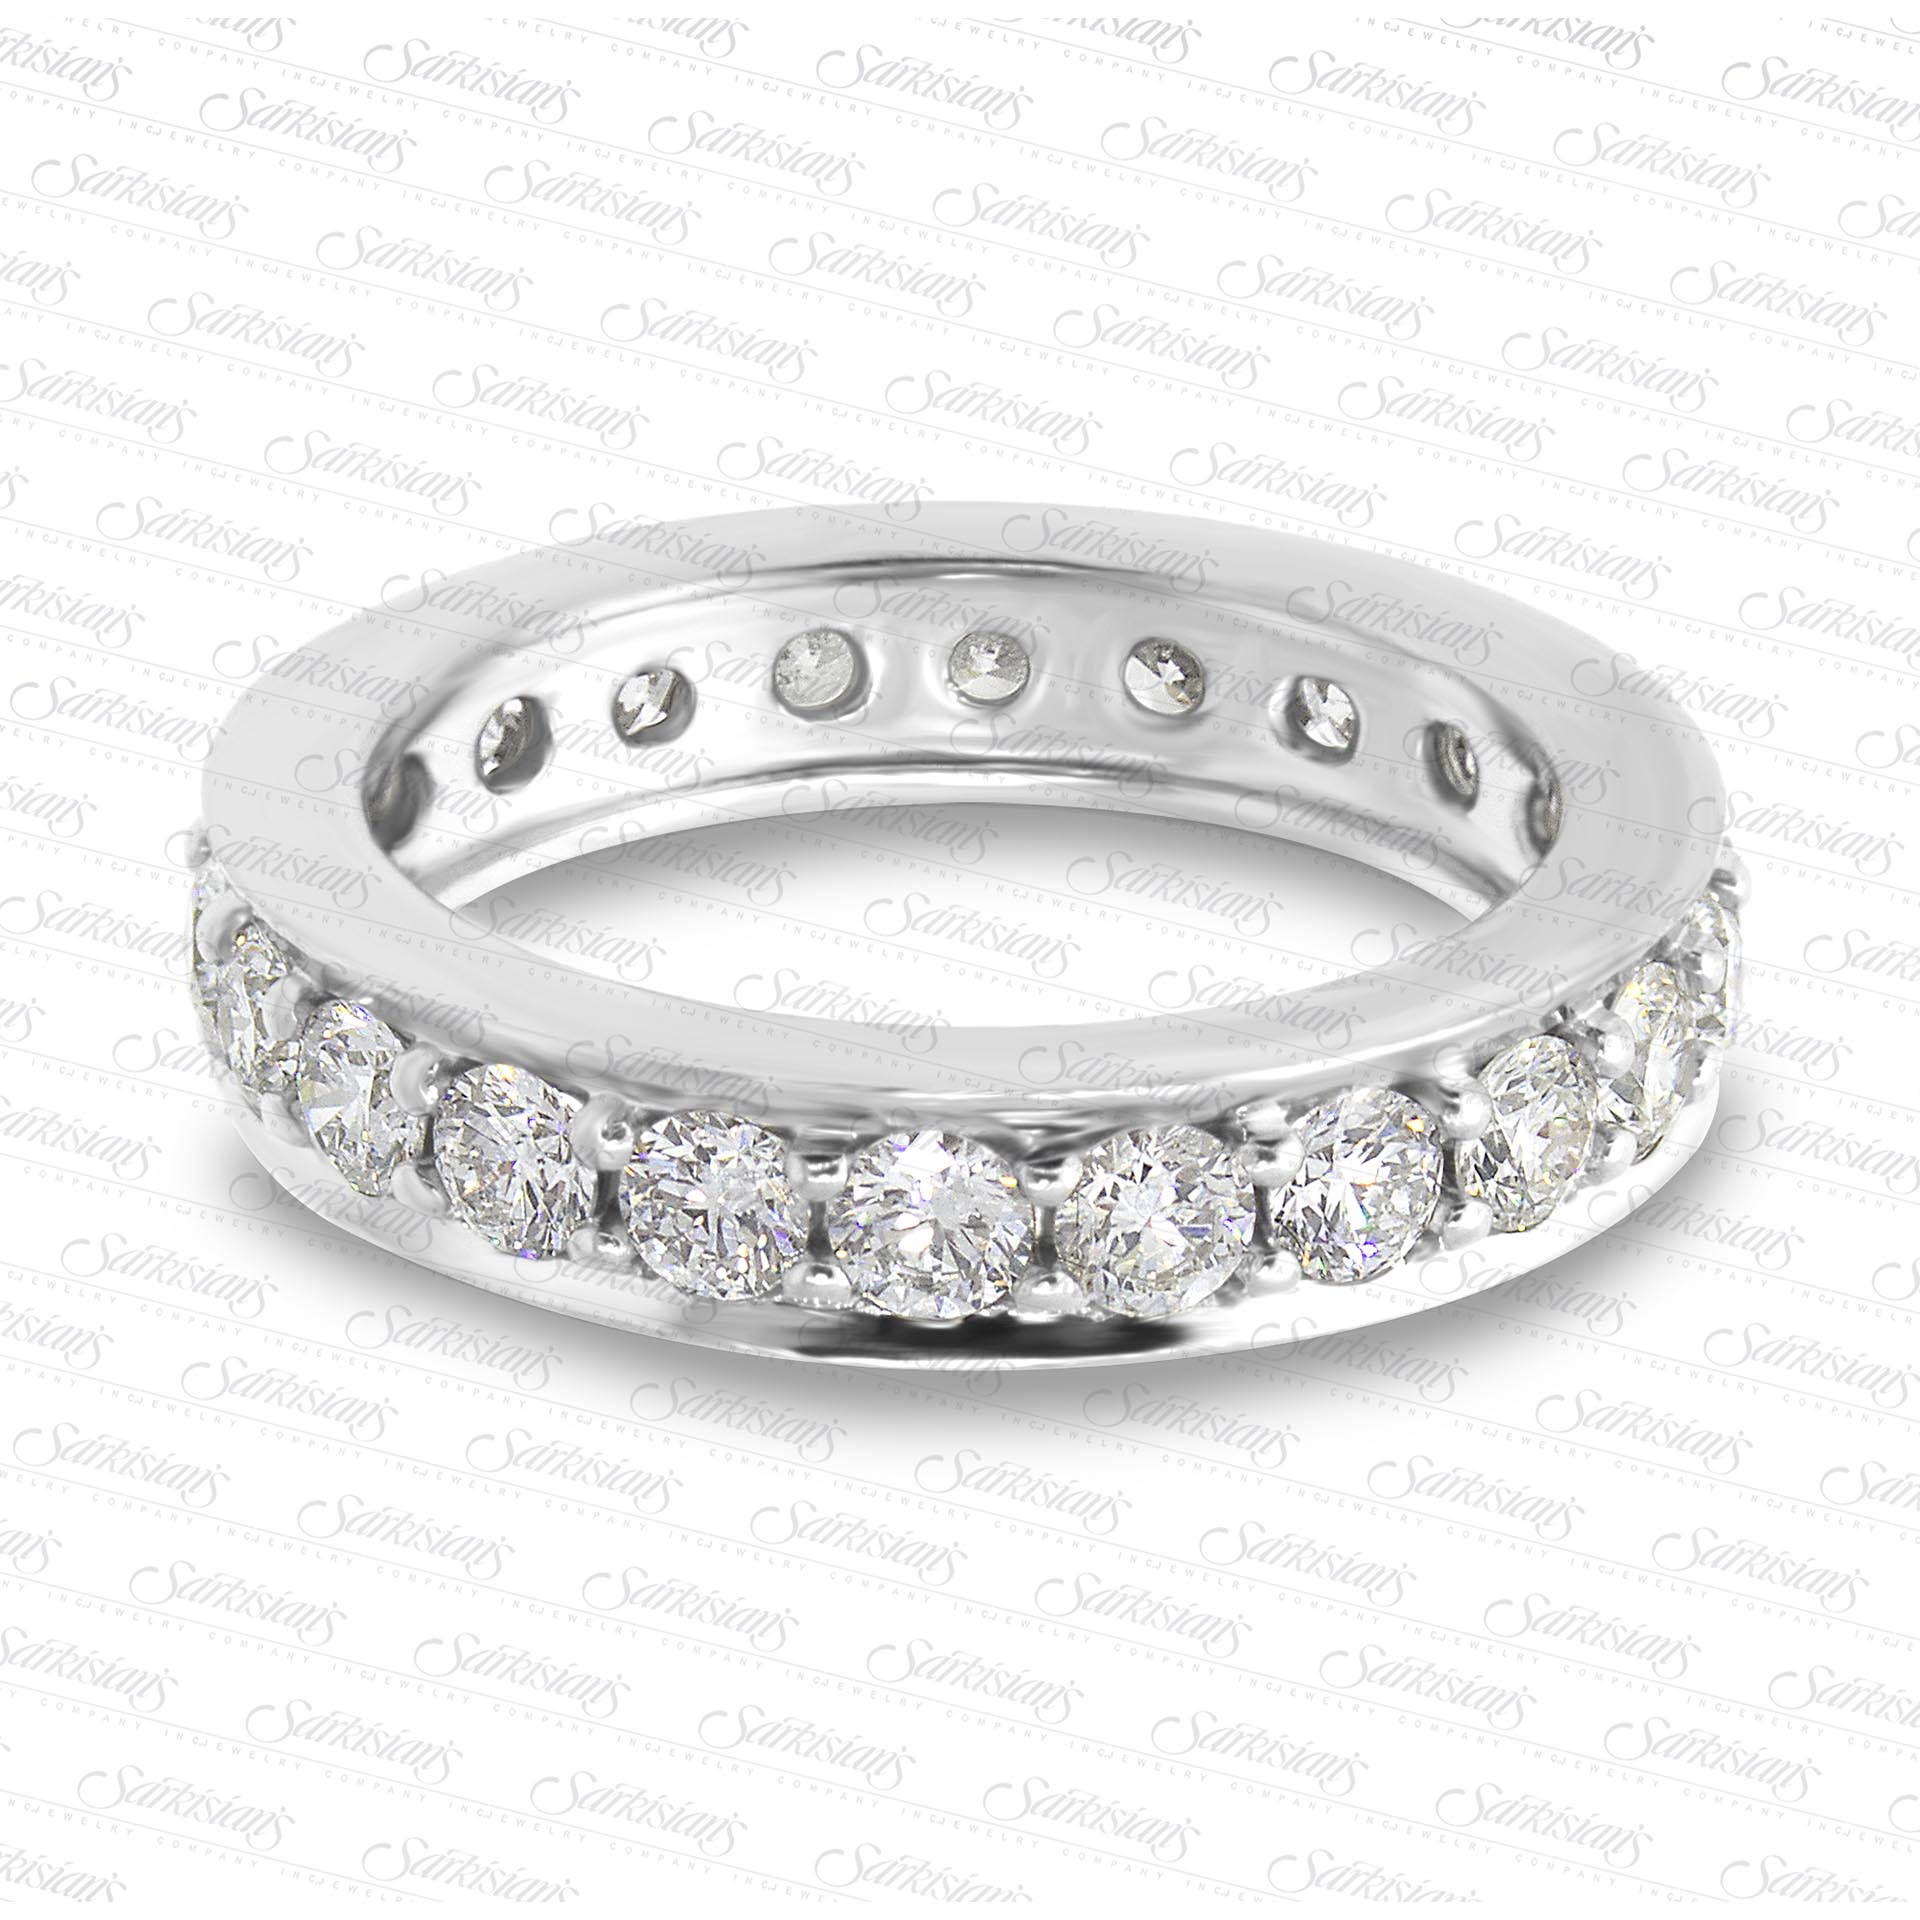 1.77 Carat Diamonds Pave Eternity Ring LR8045 - Sarkisians Jewelry 8fc32d0e98